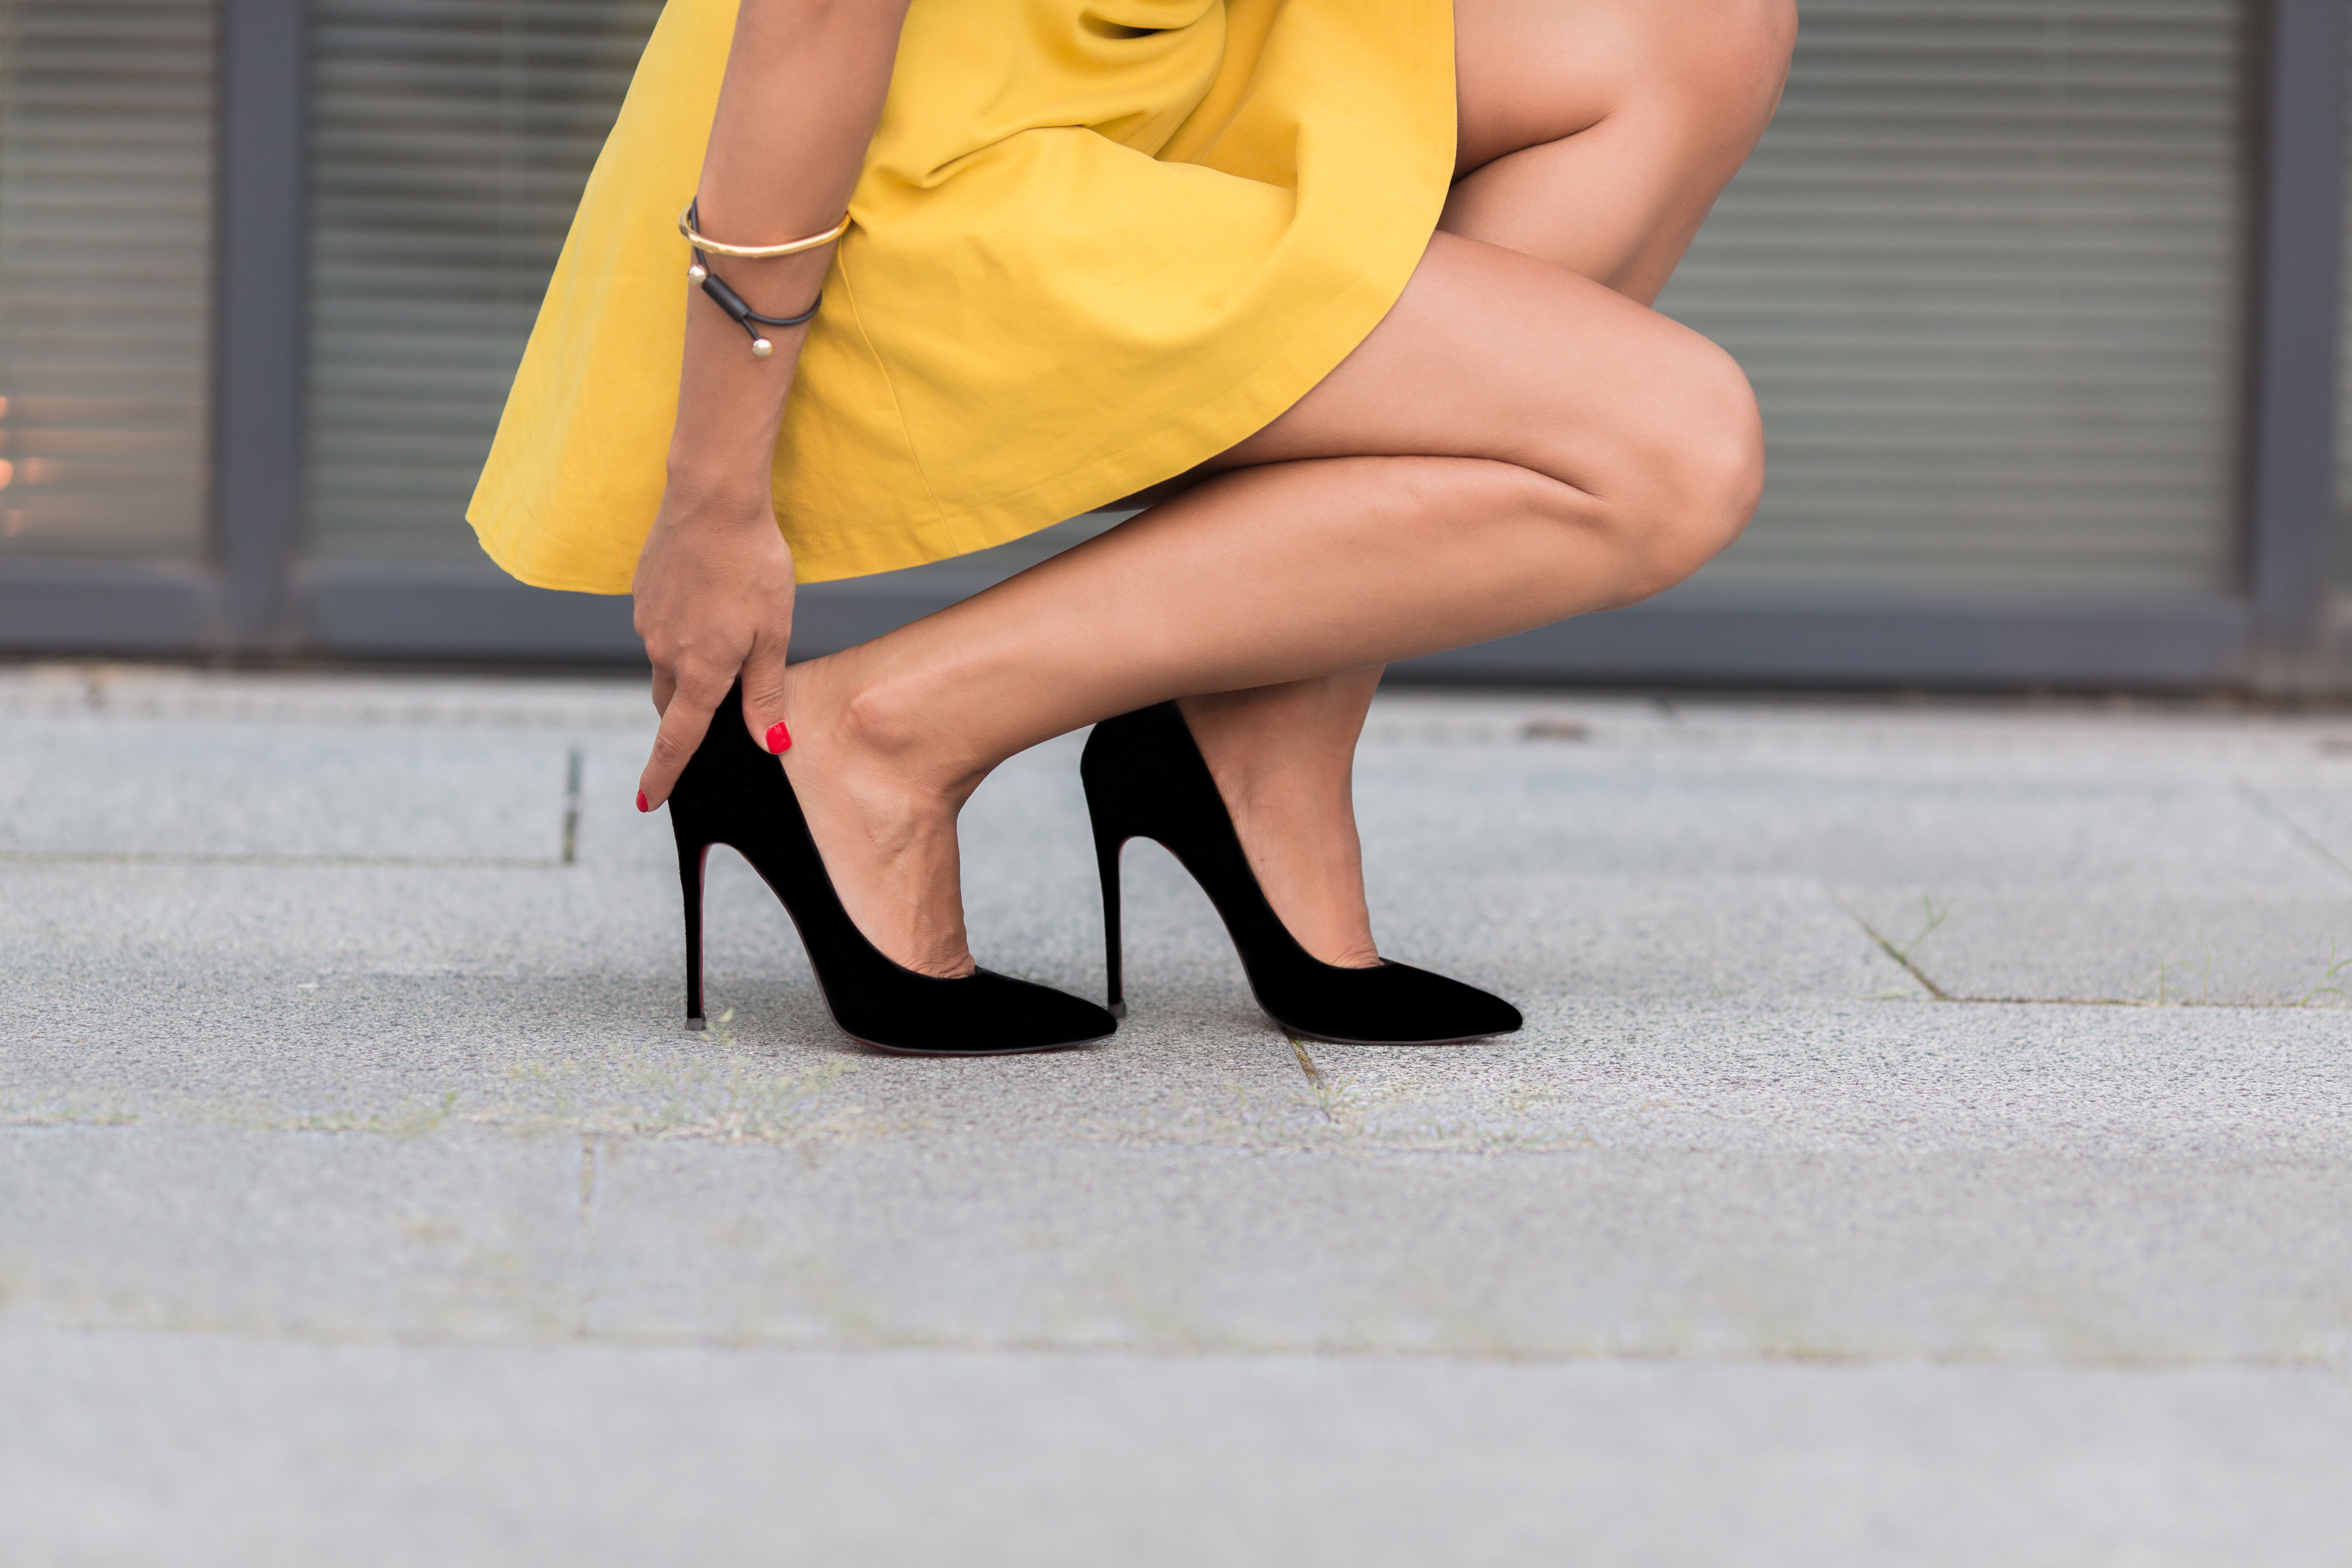 Are high heels bad for your health? Two